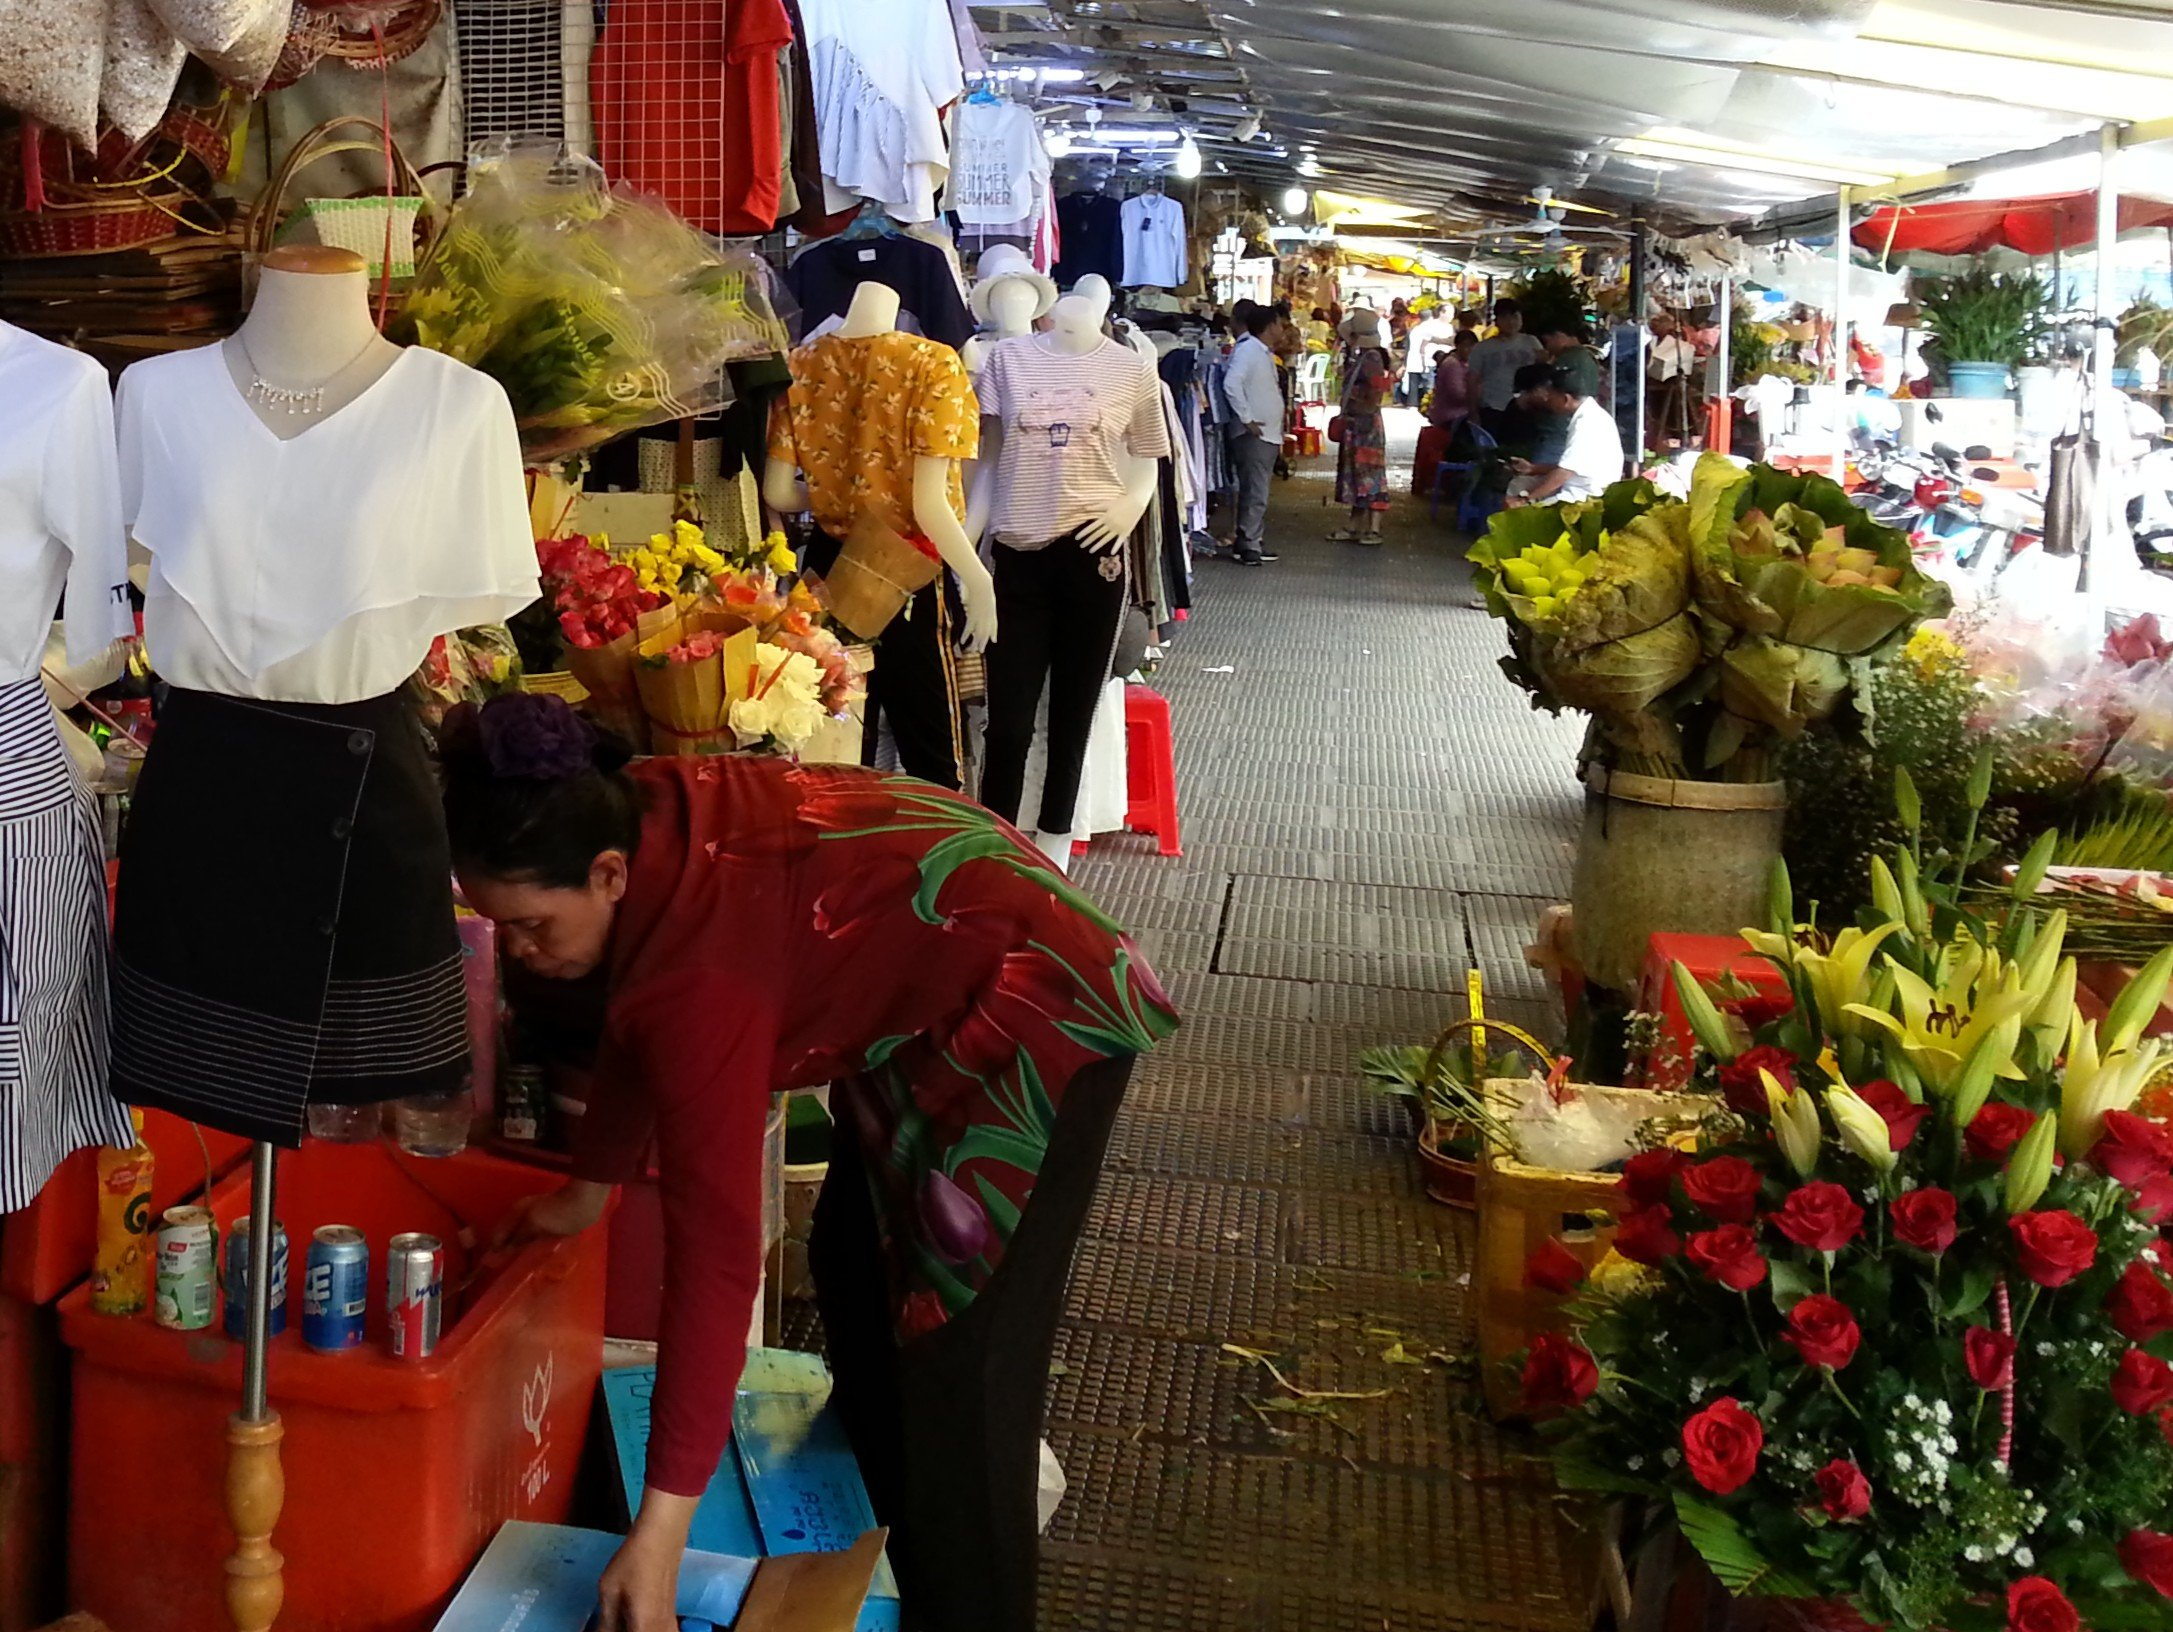 Flower stalls around the outside of Central Market